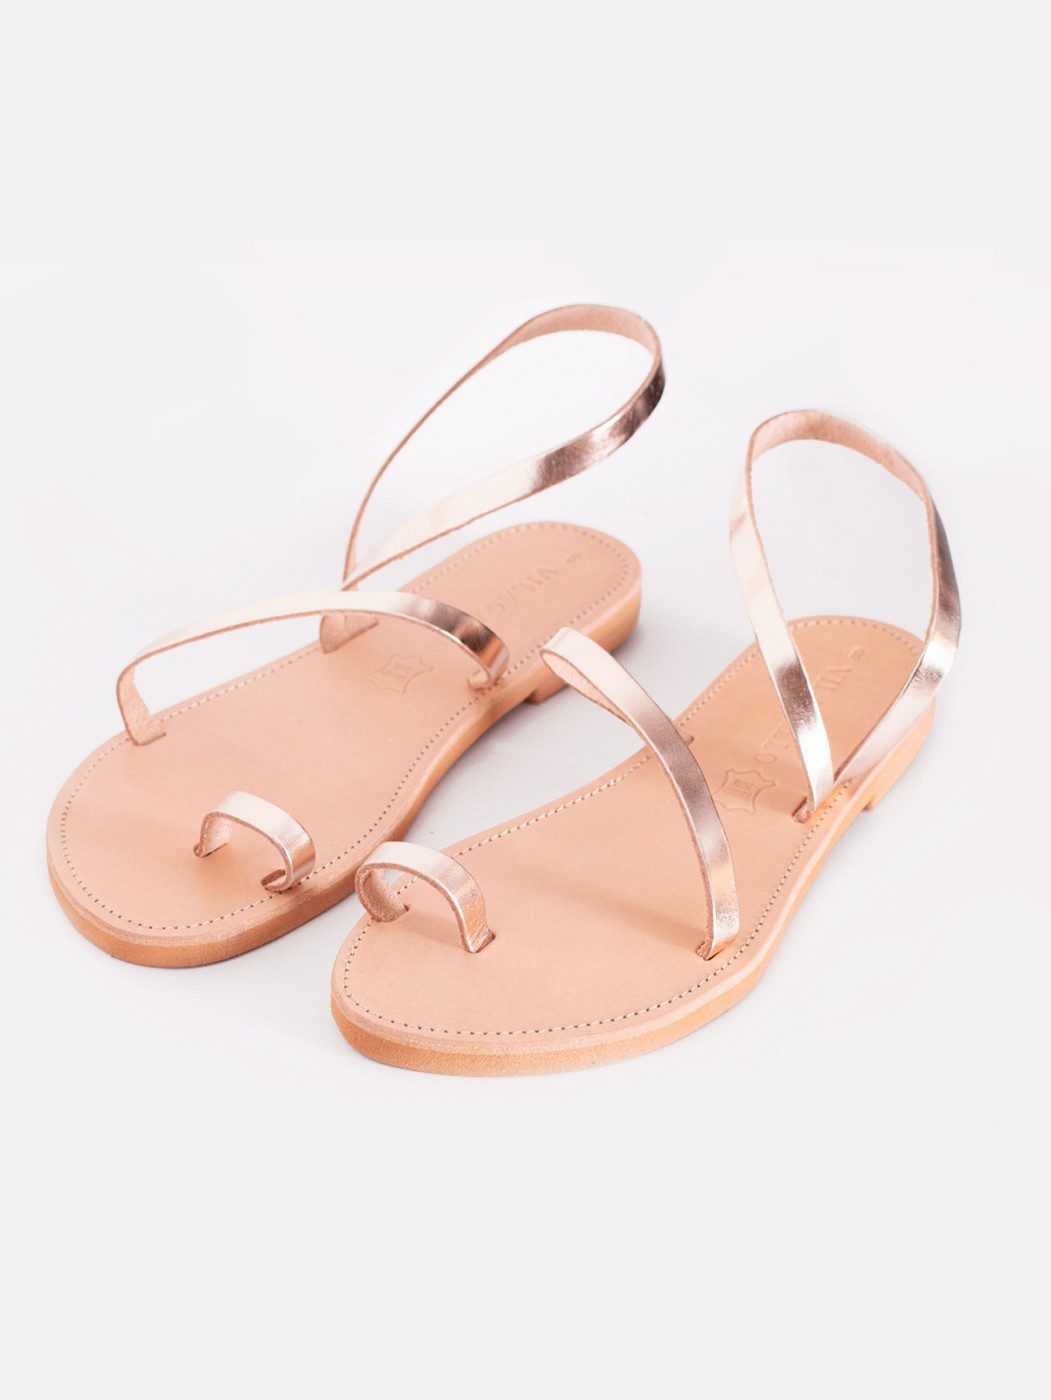 LIPSI SANDAL ROSE GOLD Z